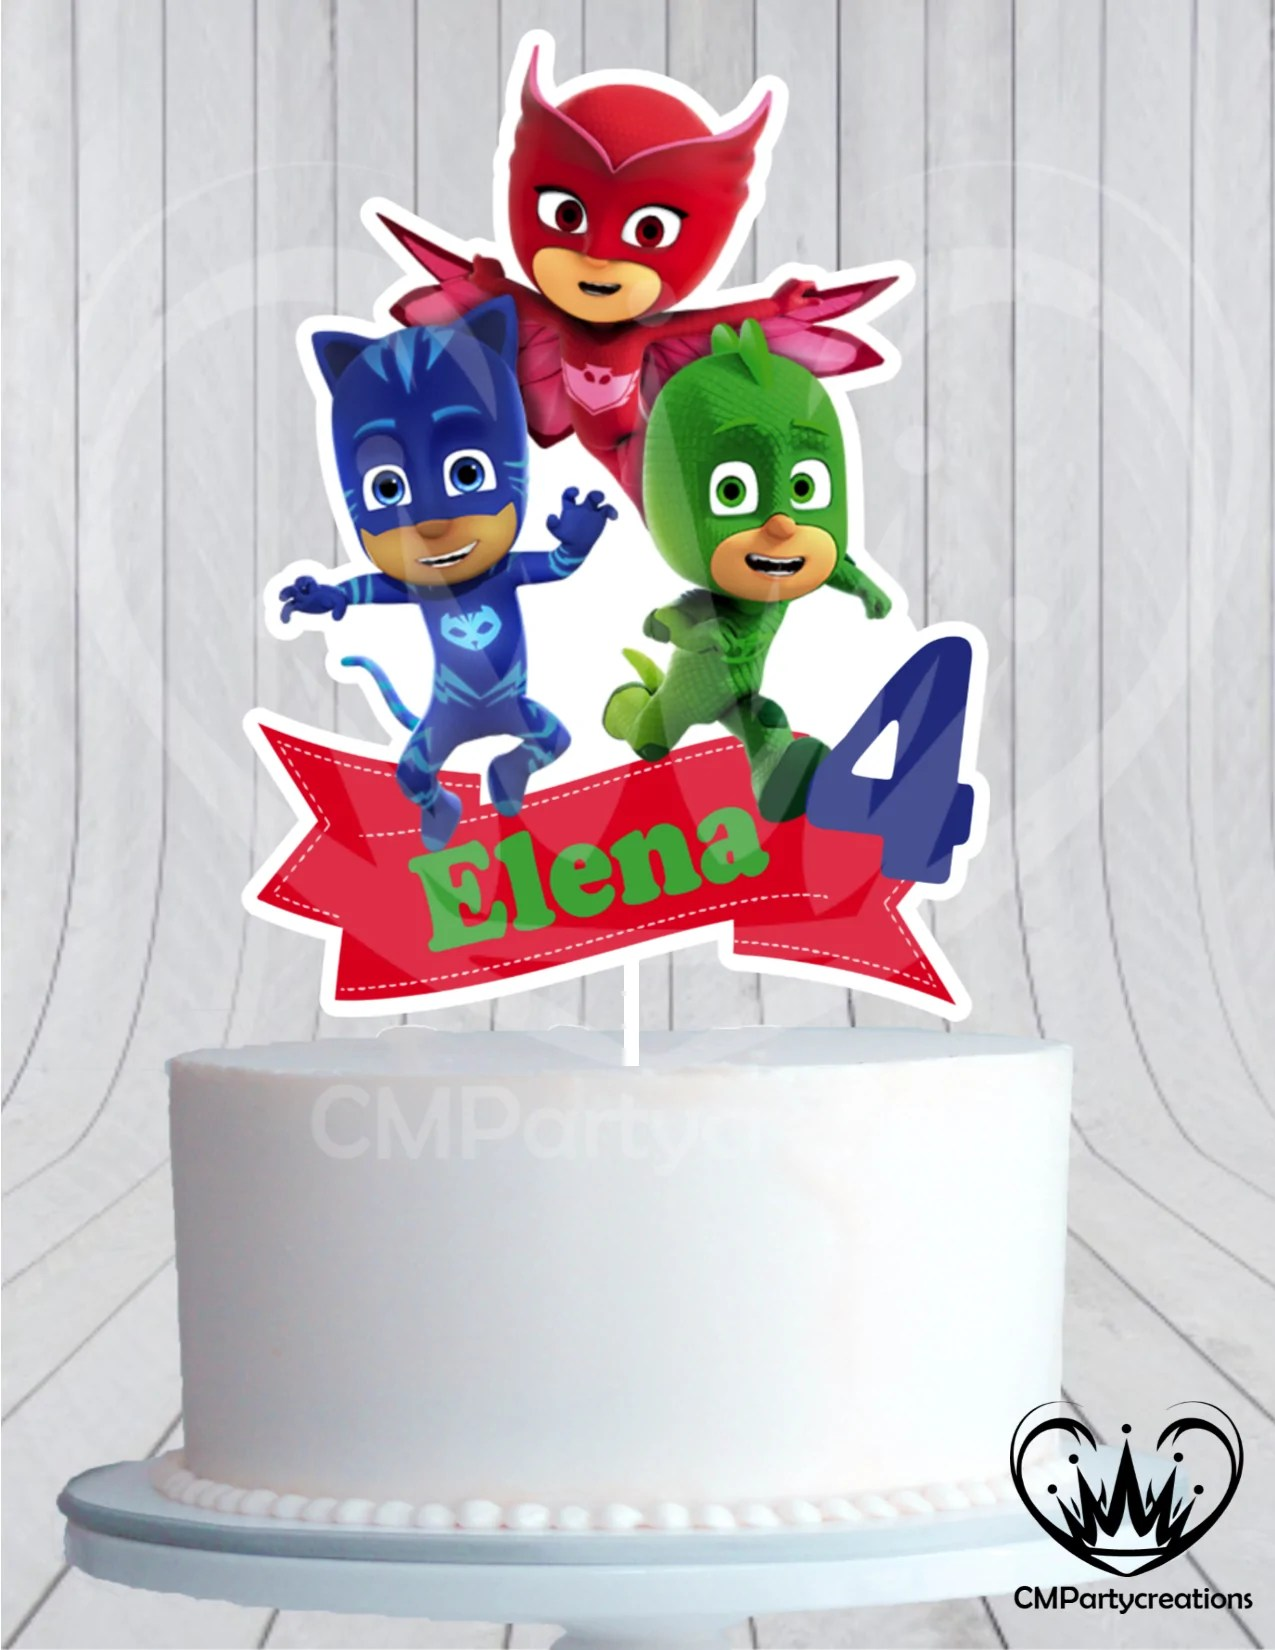 Pj Masks Birthday Party Cake Topper Cmpartycreations